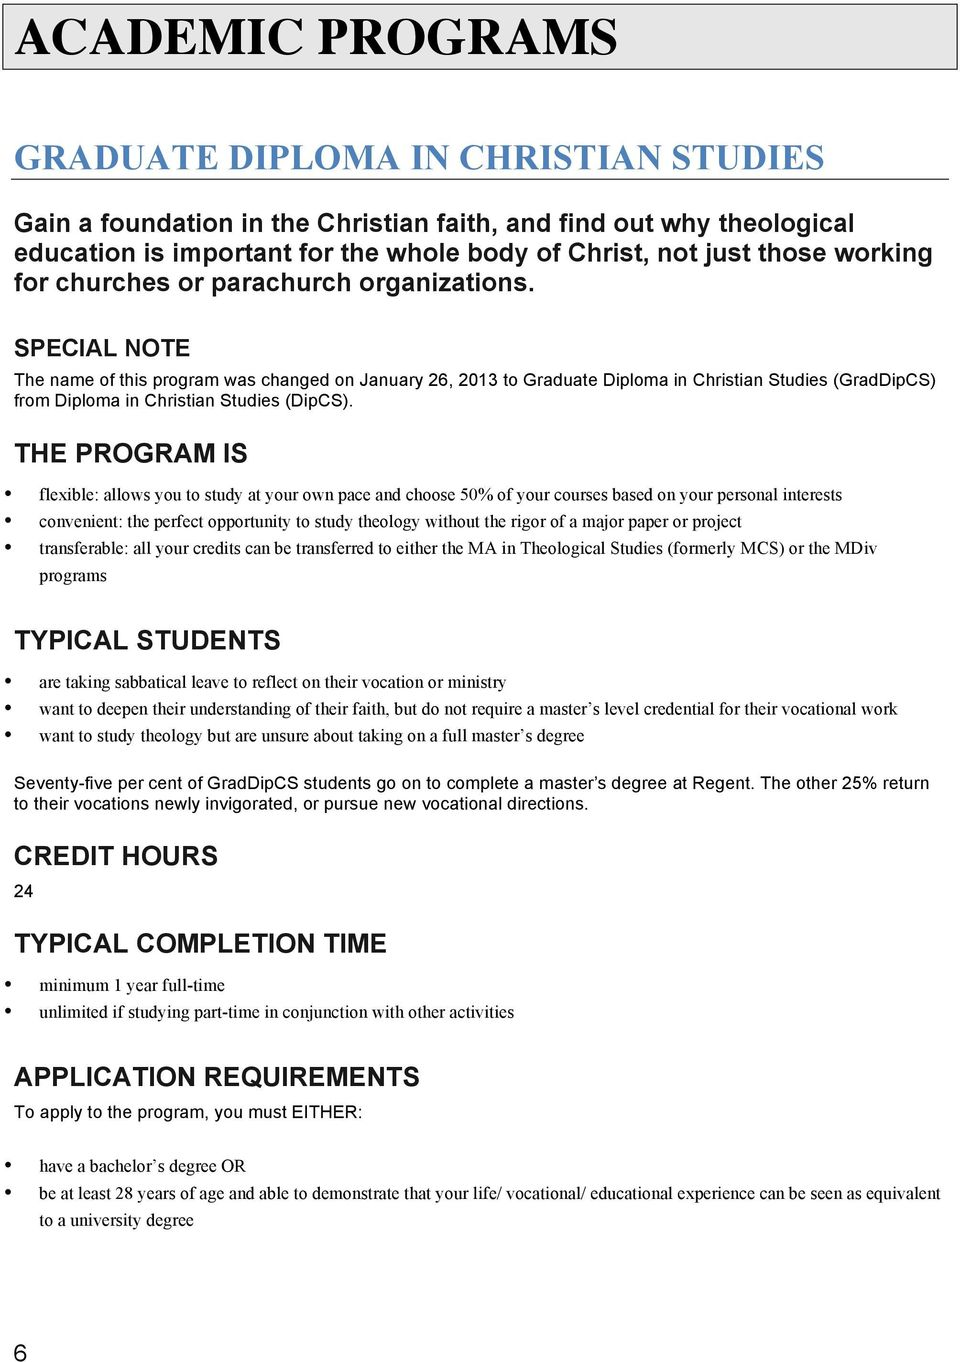 SPECIAL NOTE The name of this program was changed on January 26, 2013 to Graduate Diploma in Christian Studies (GradDipCS) from Diploma in Christian Studies (DipCS).